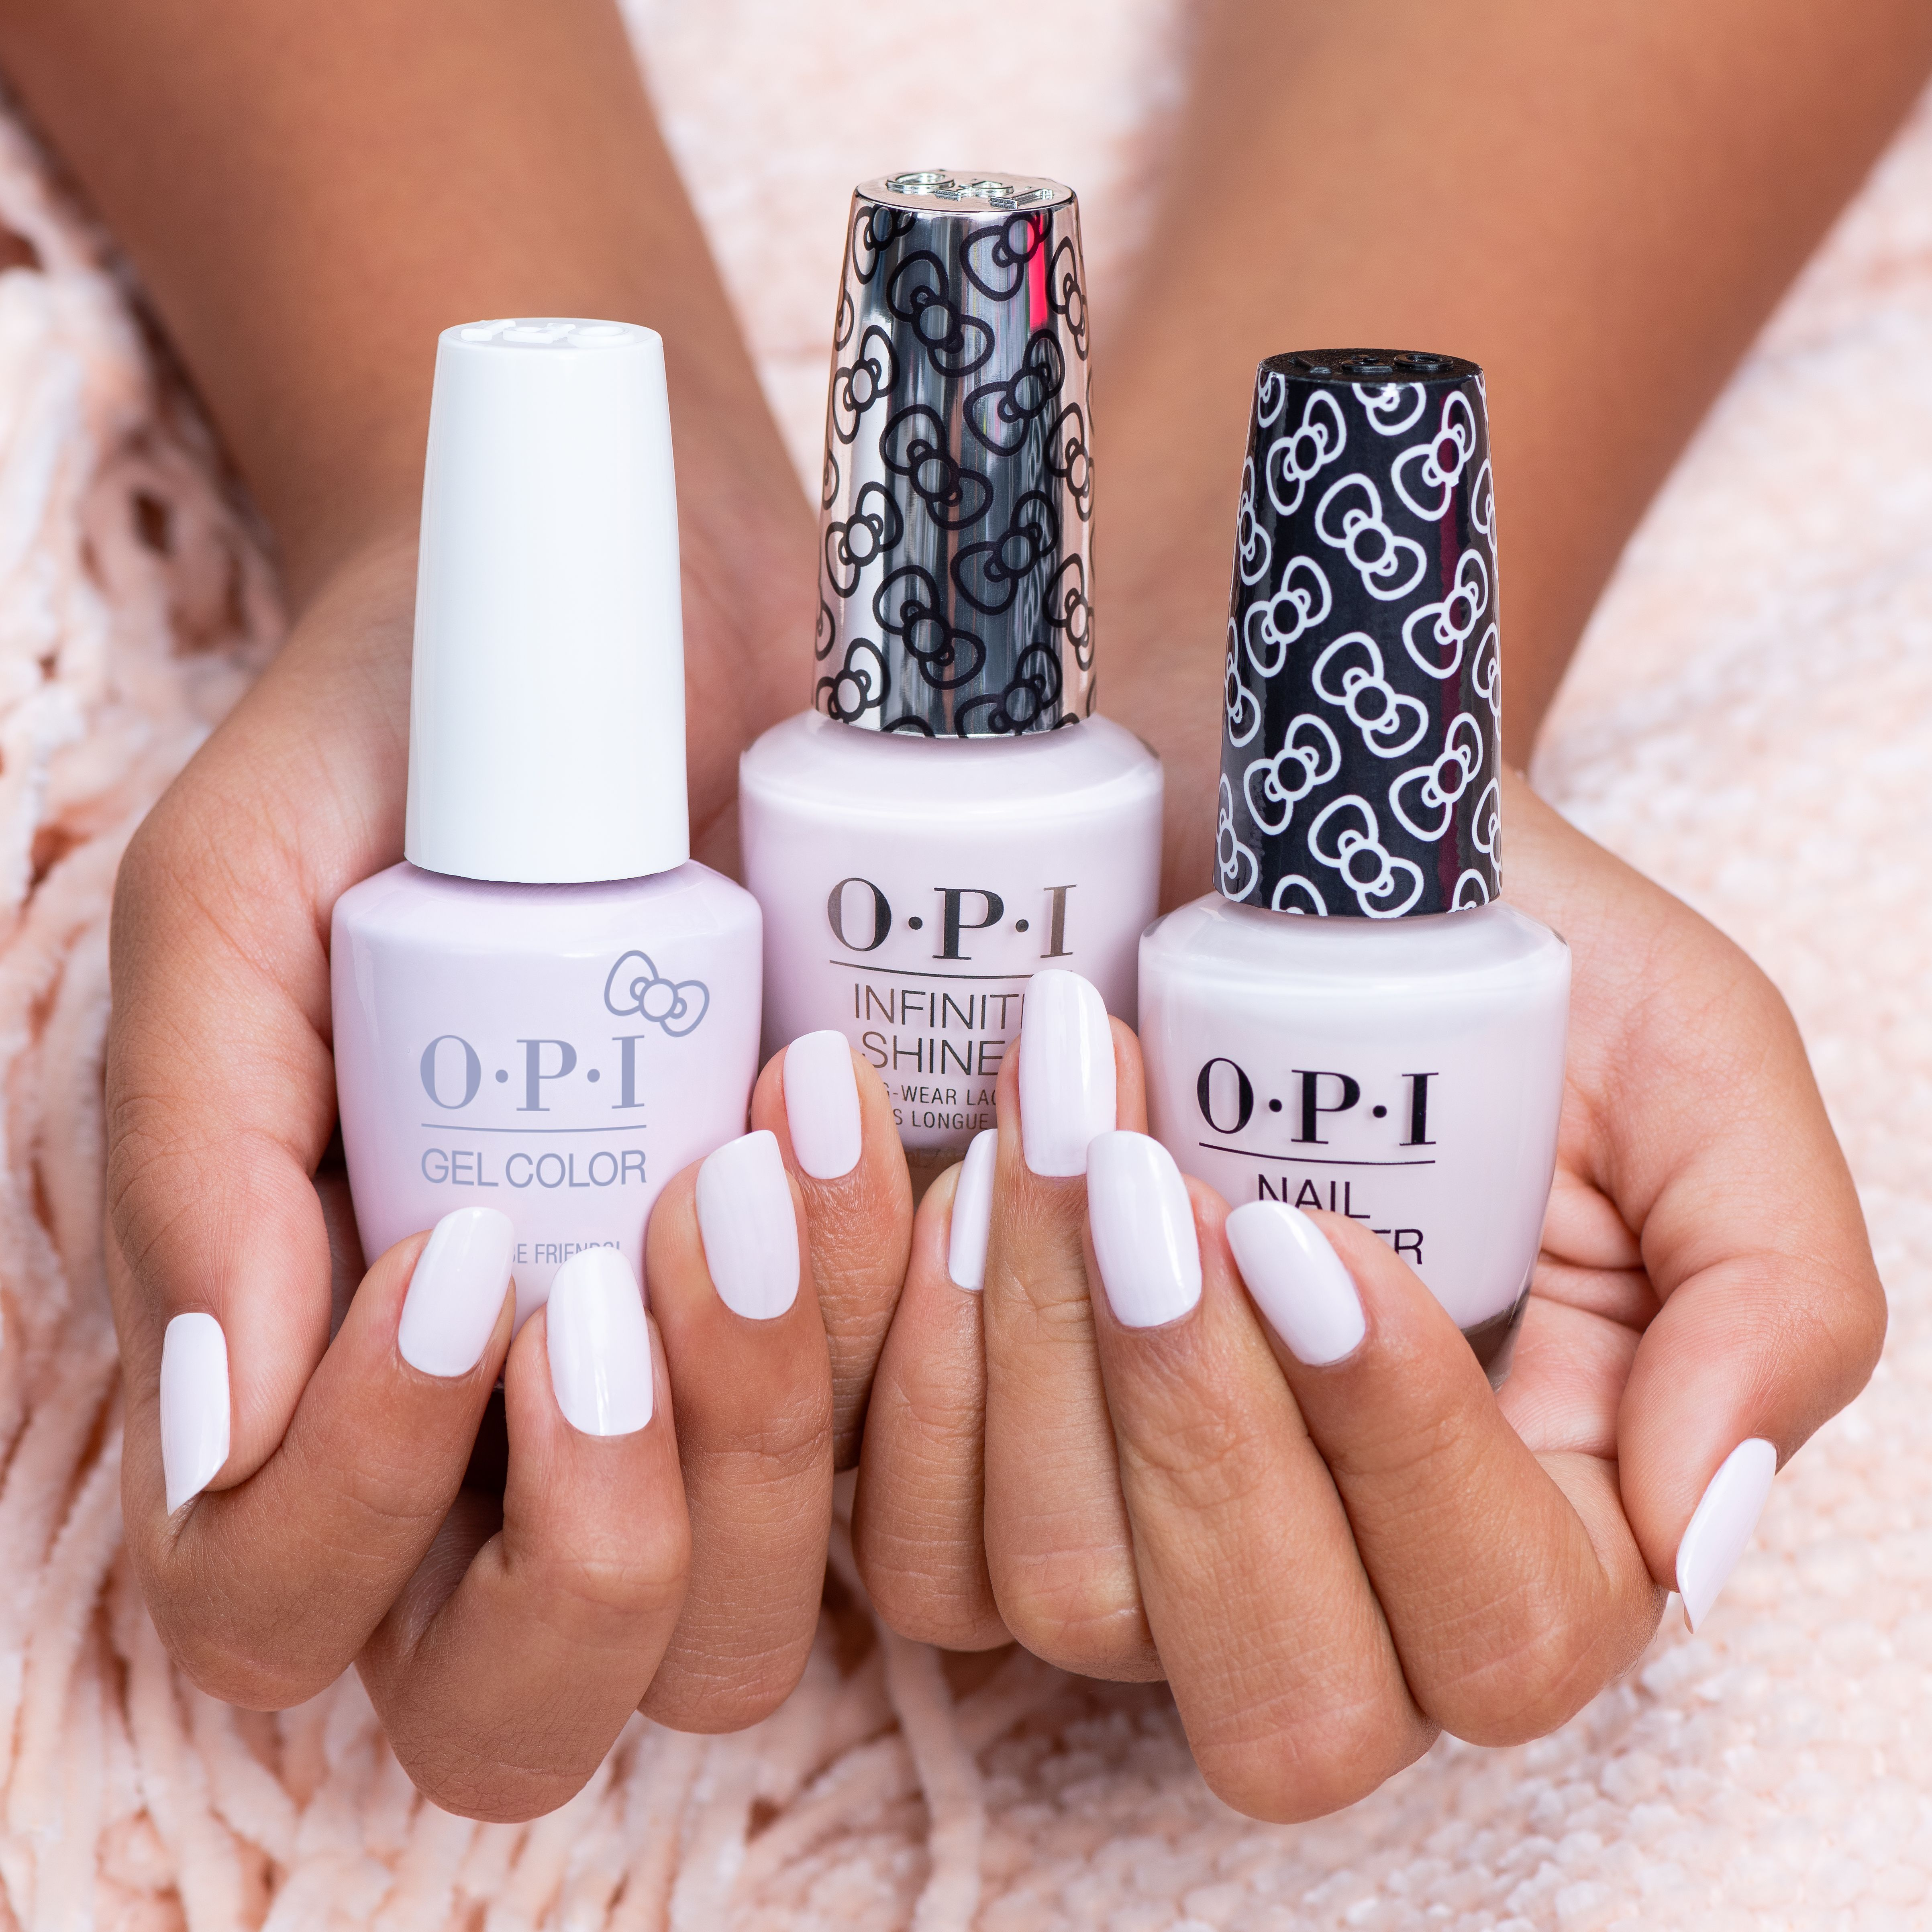 Whether You Choose Opi Nail Lacquer Opi Infinite Shine Or Opi Gel Color It Doesn T Matter Let S Be Friends Forever A Fall Gel Nails Nails Gel Nail Colors